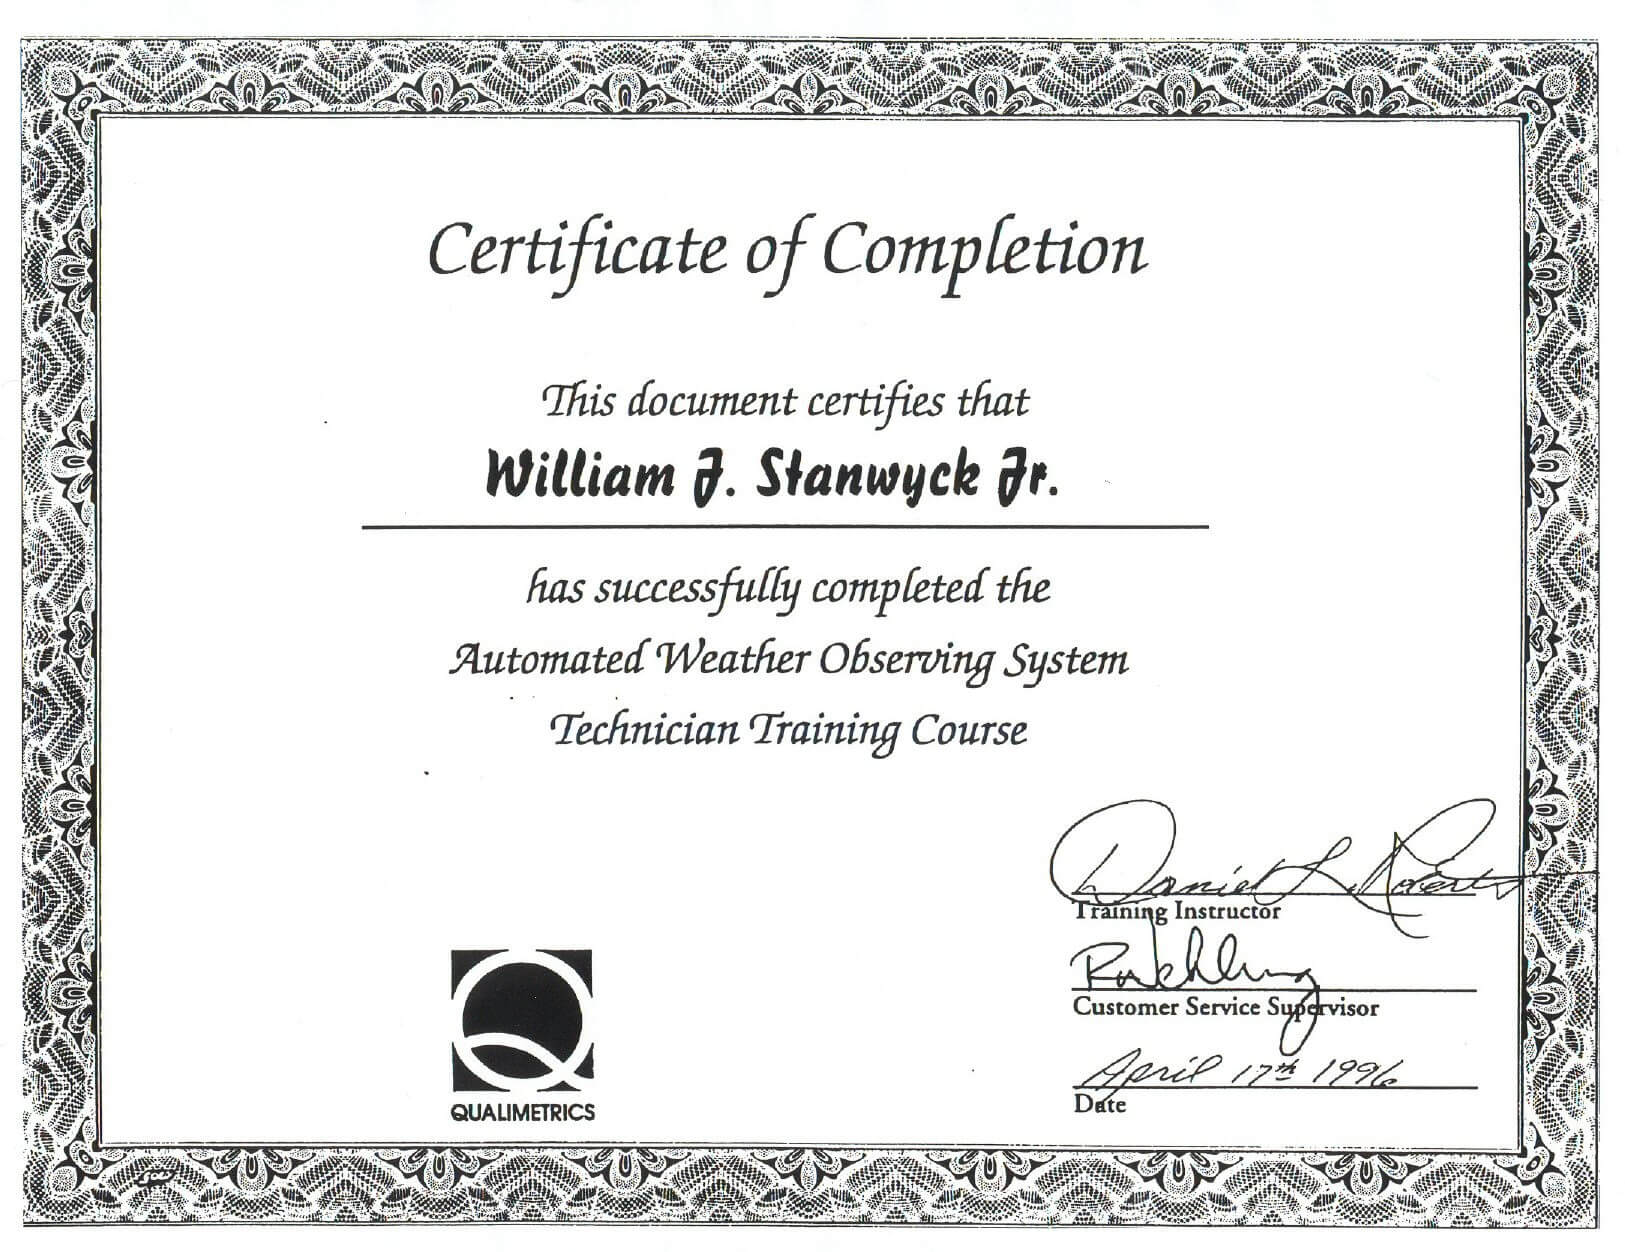 026 Template Ideas Certificates Free Gift Certificate Makes Throughout This Entitles The Bearer To Template Certificate